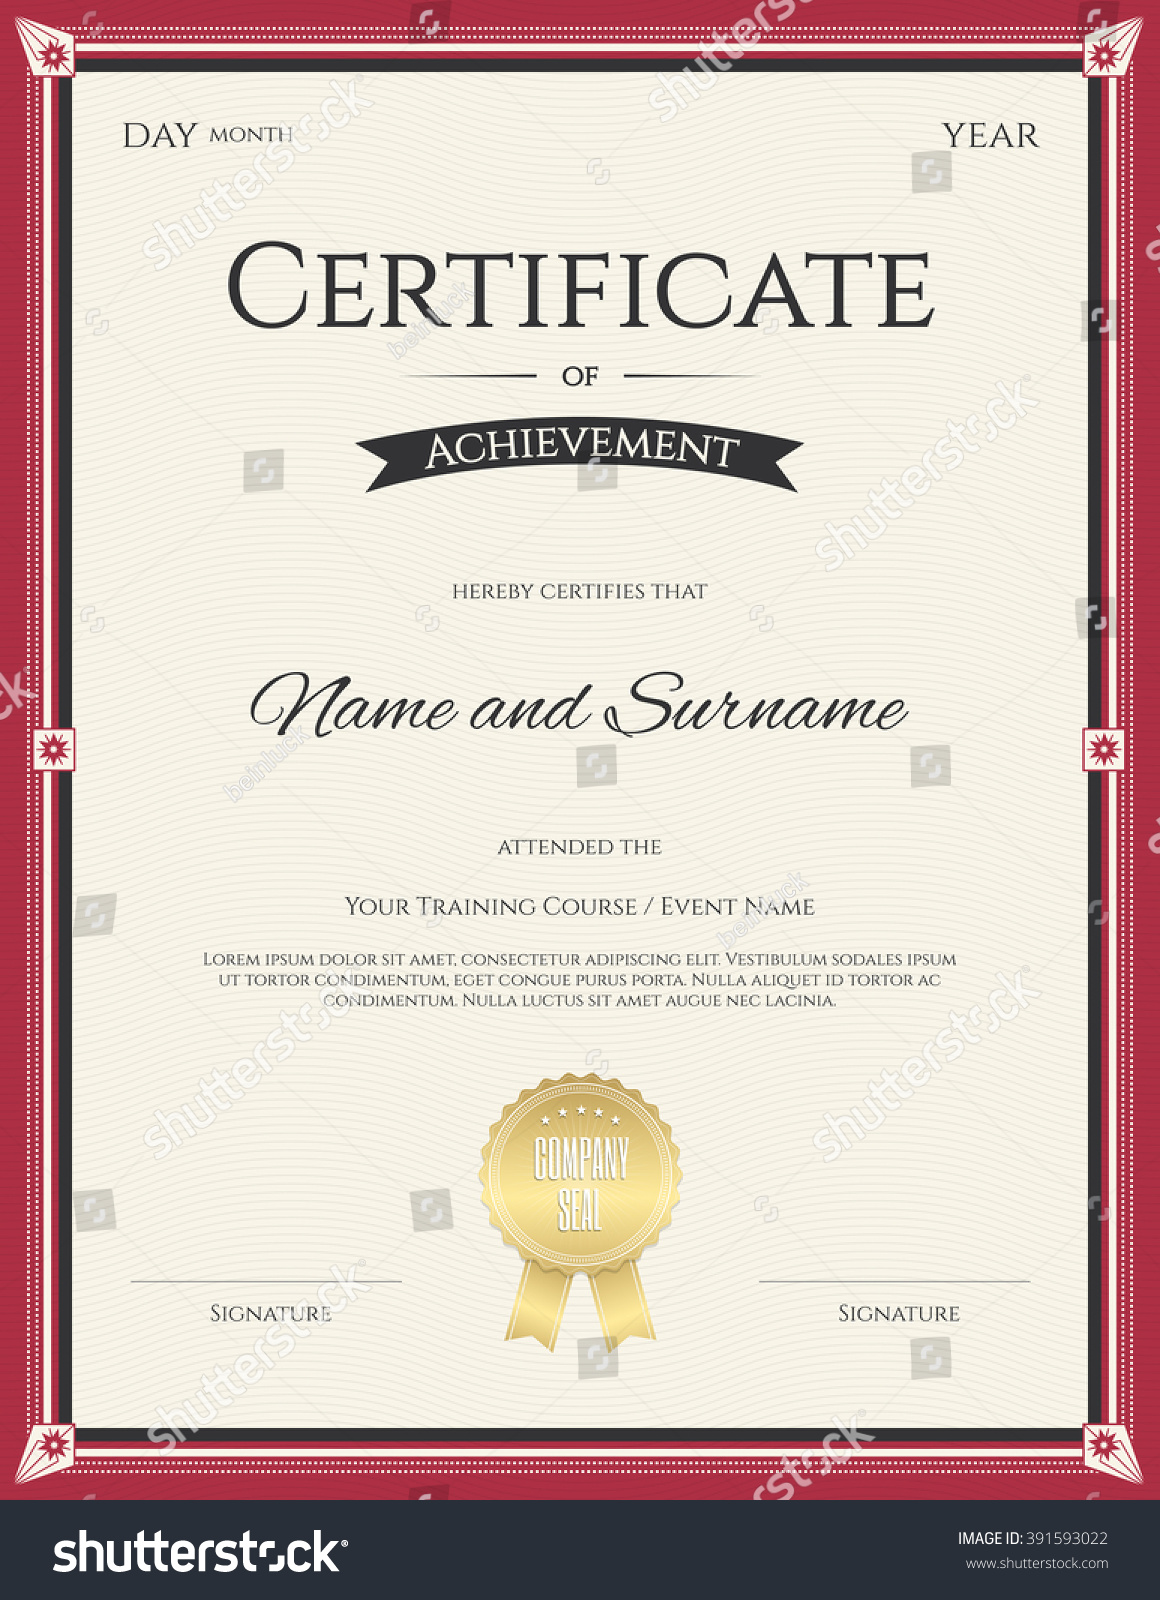 Portrait certificate achievement template vector graduation stock portrait certificate of achievement template in vector for graduation completion 1betcityfo Gallery